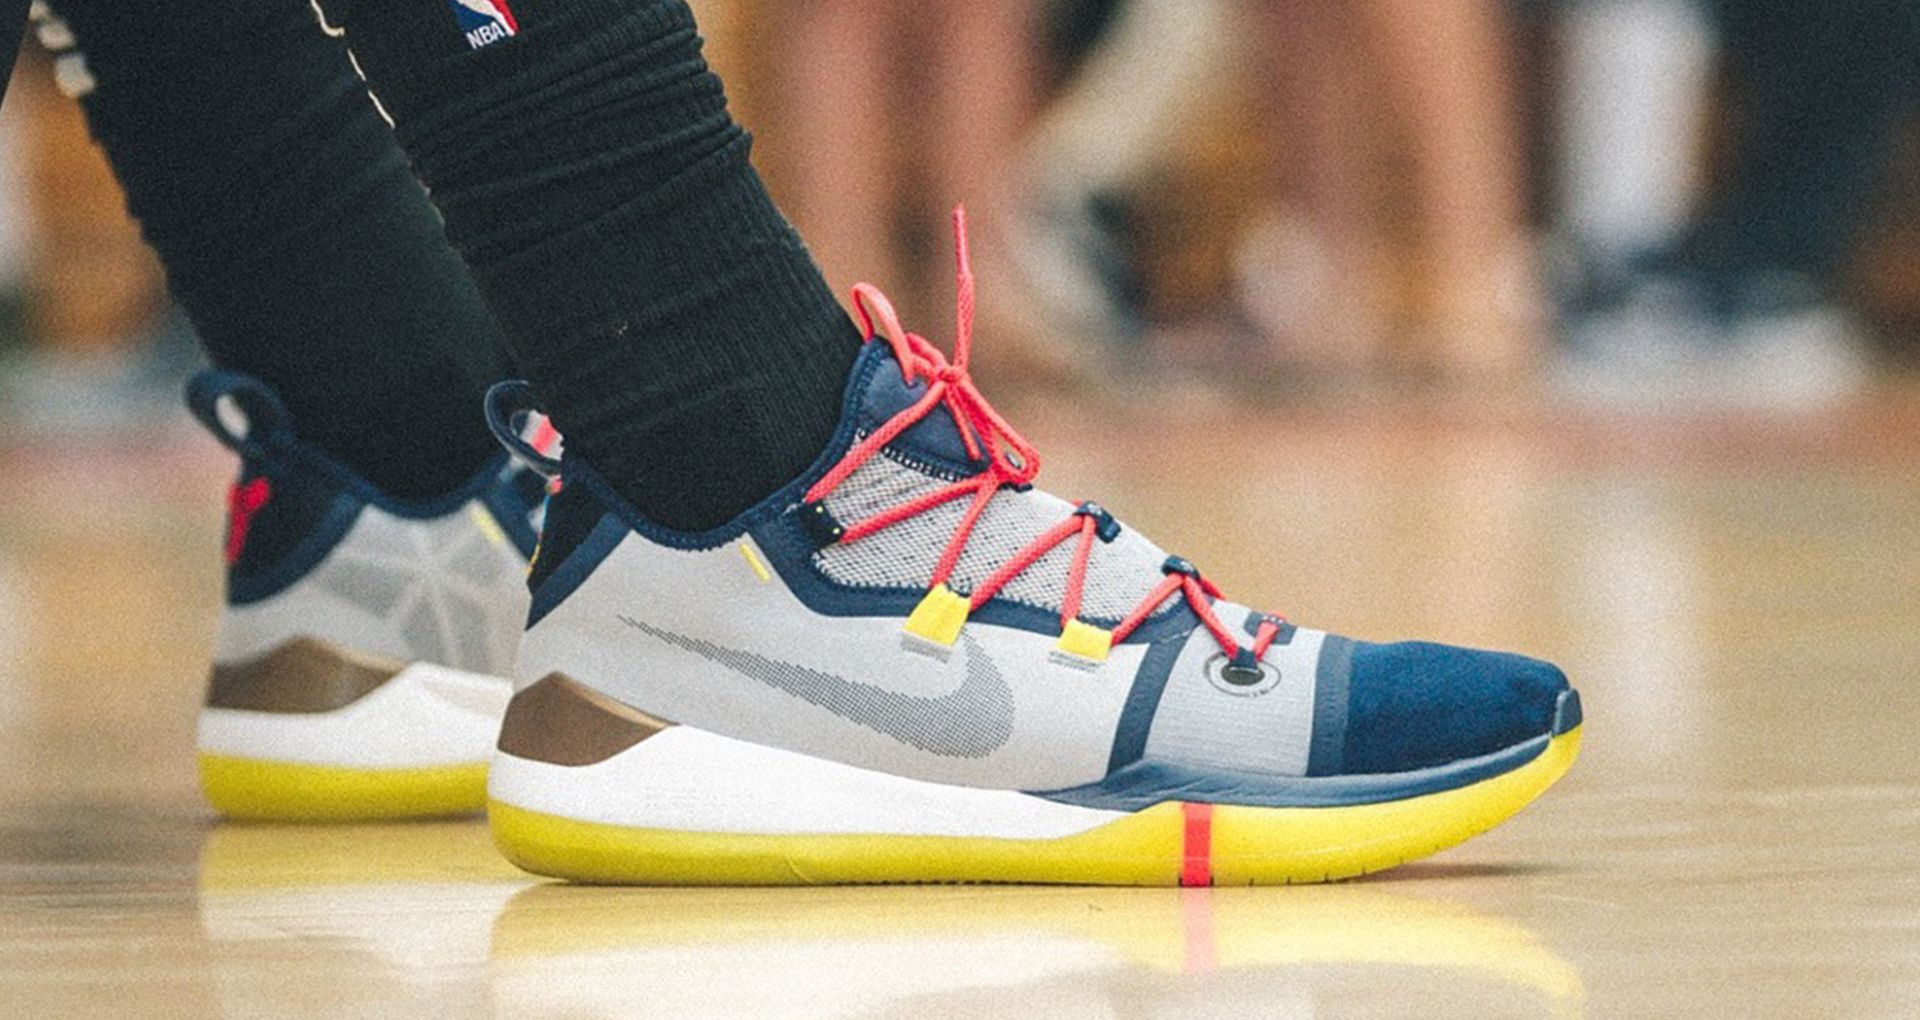 finest selection 088a6 b94f7 Mamba Day  Nike x Kobe AD  The Legacy Continues  – SoleGRIND